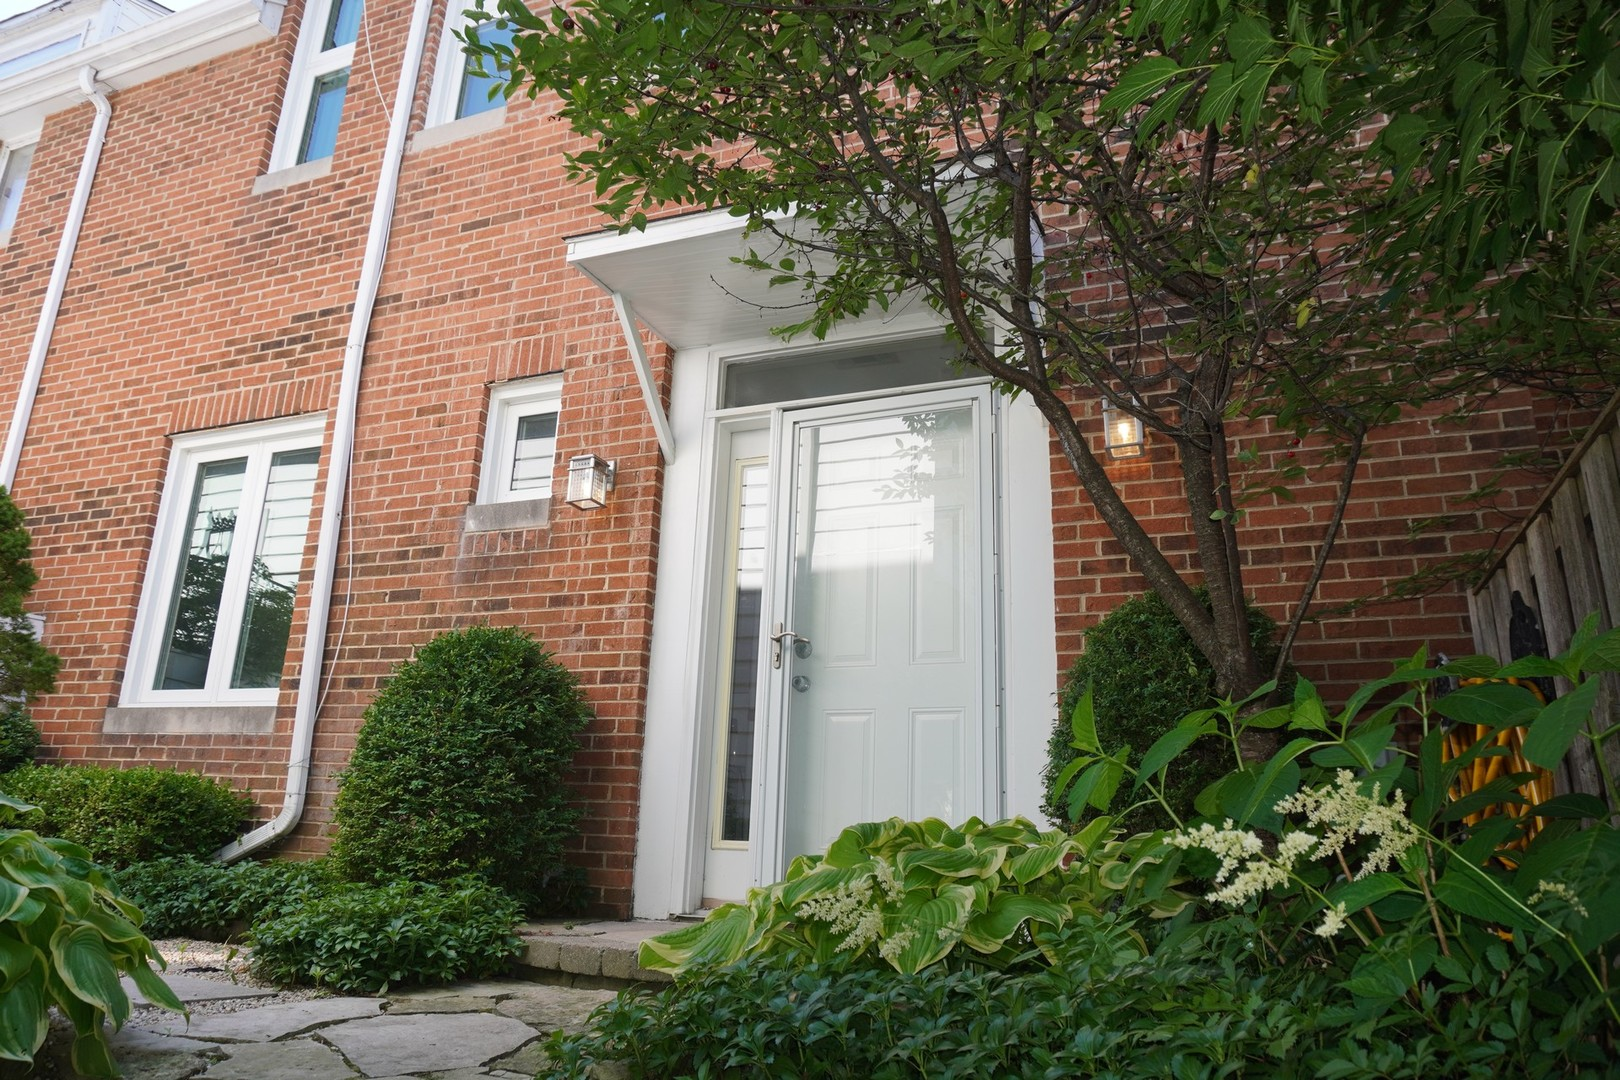 This incredible 3 Bedroom, 2.5 Bath townhome is in an incredible location close to everything that t